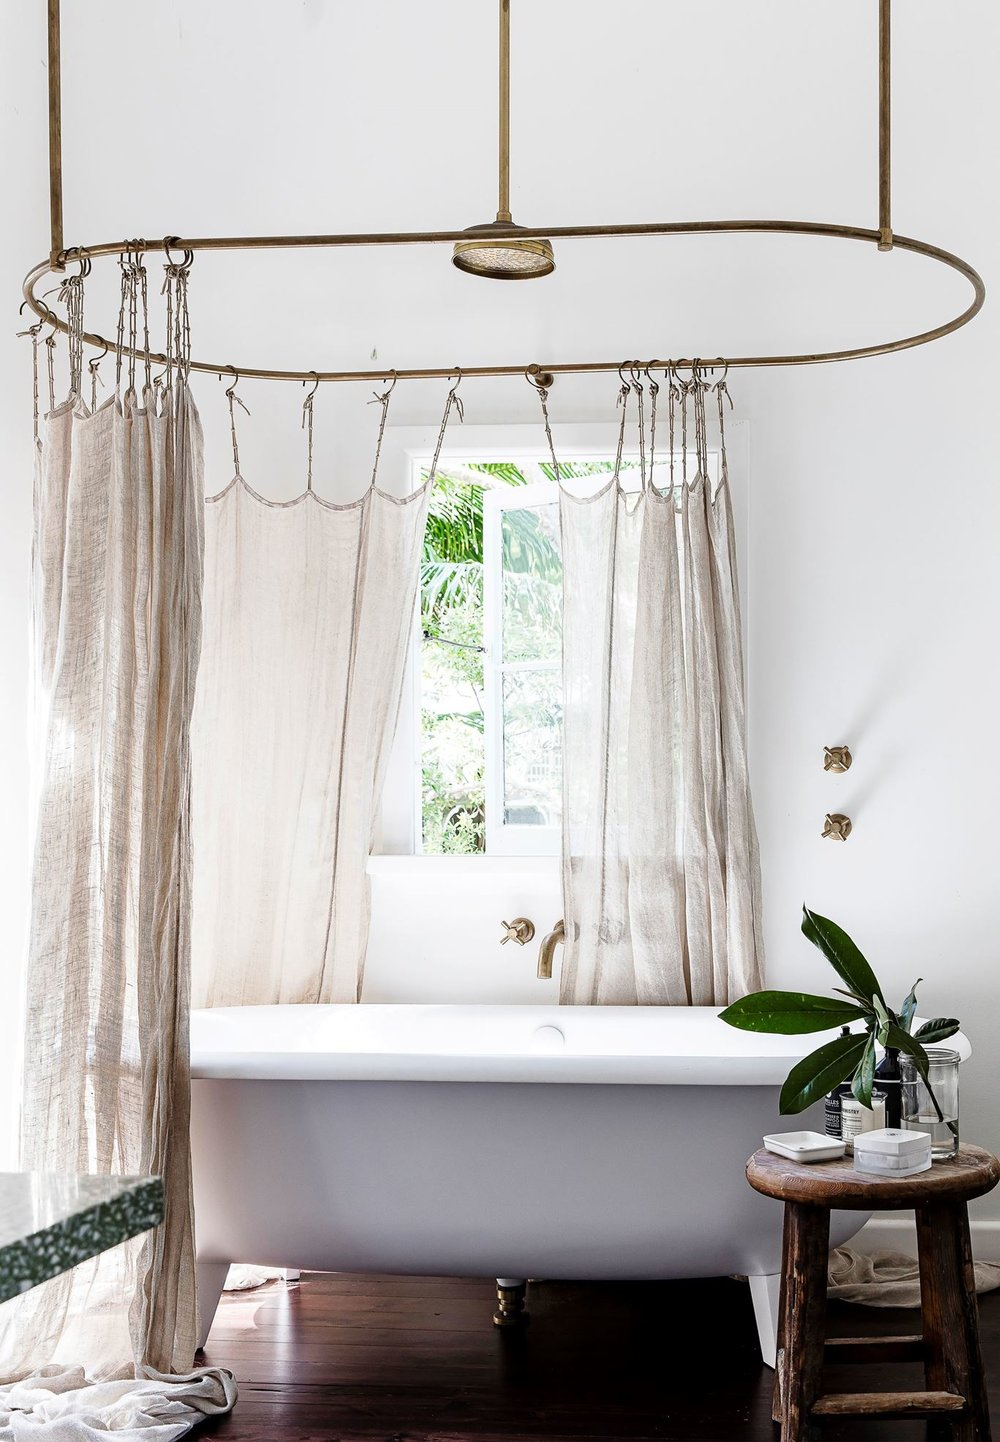 This gorgeous bath combined with the wooden flooring is just dreamy!